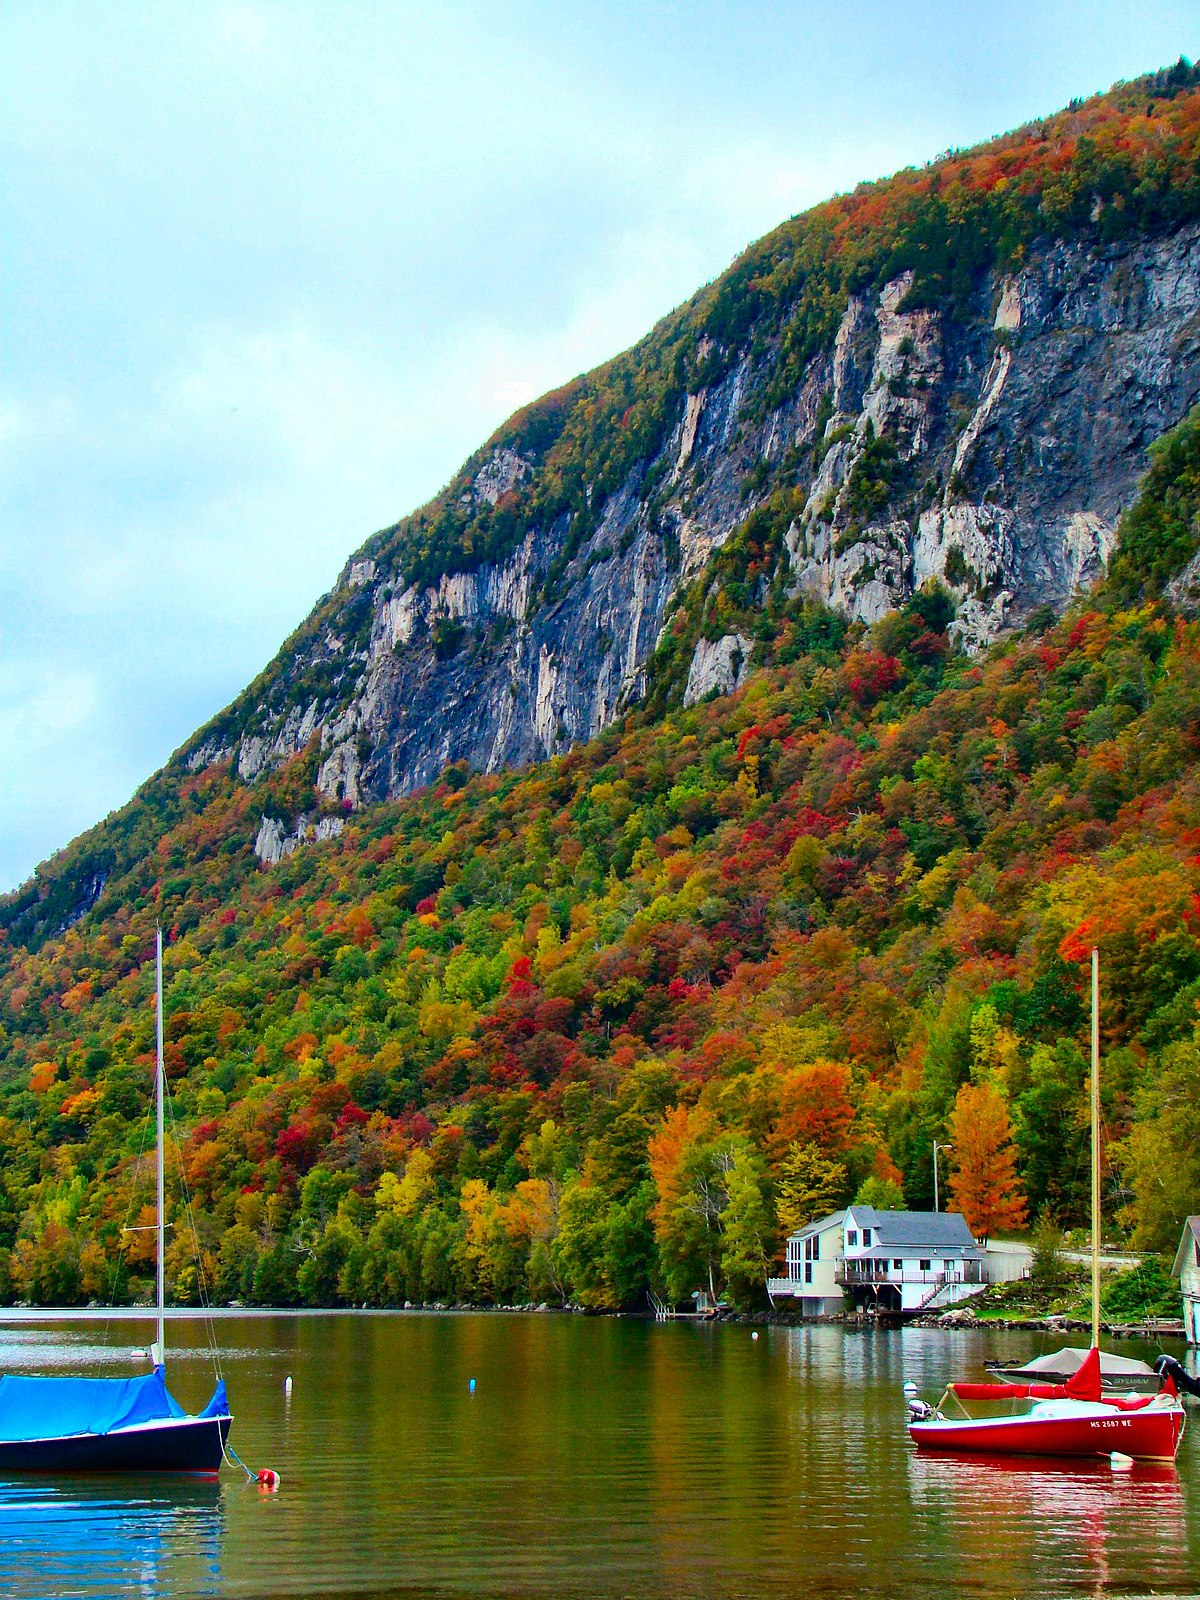 lake vermont willoughby usa kingdom wikipedia places northeast fall vt visit autumn summer united very states leaf mountain must place